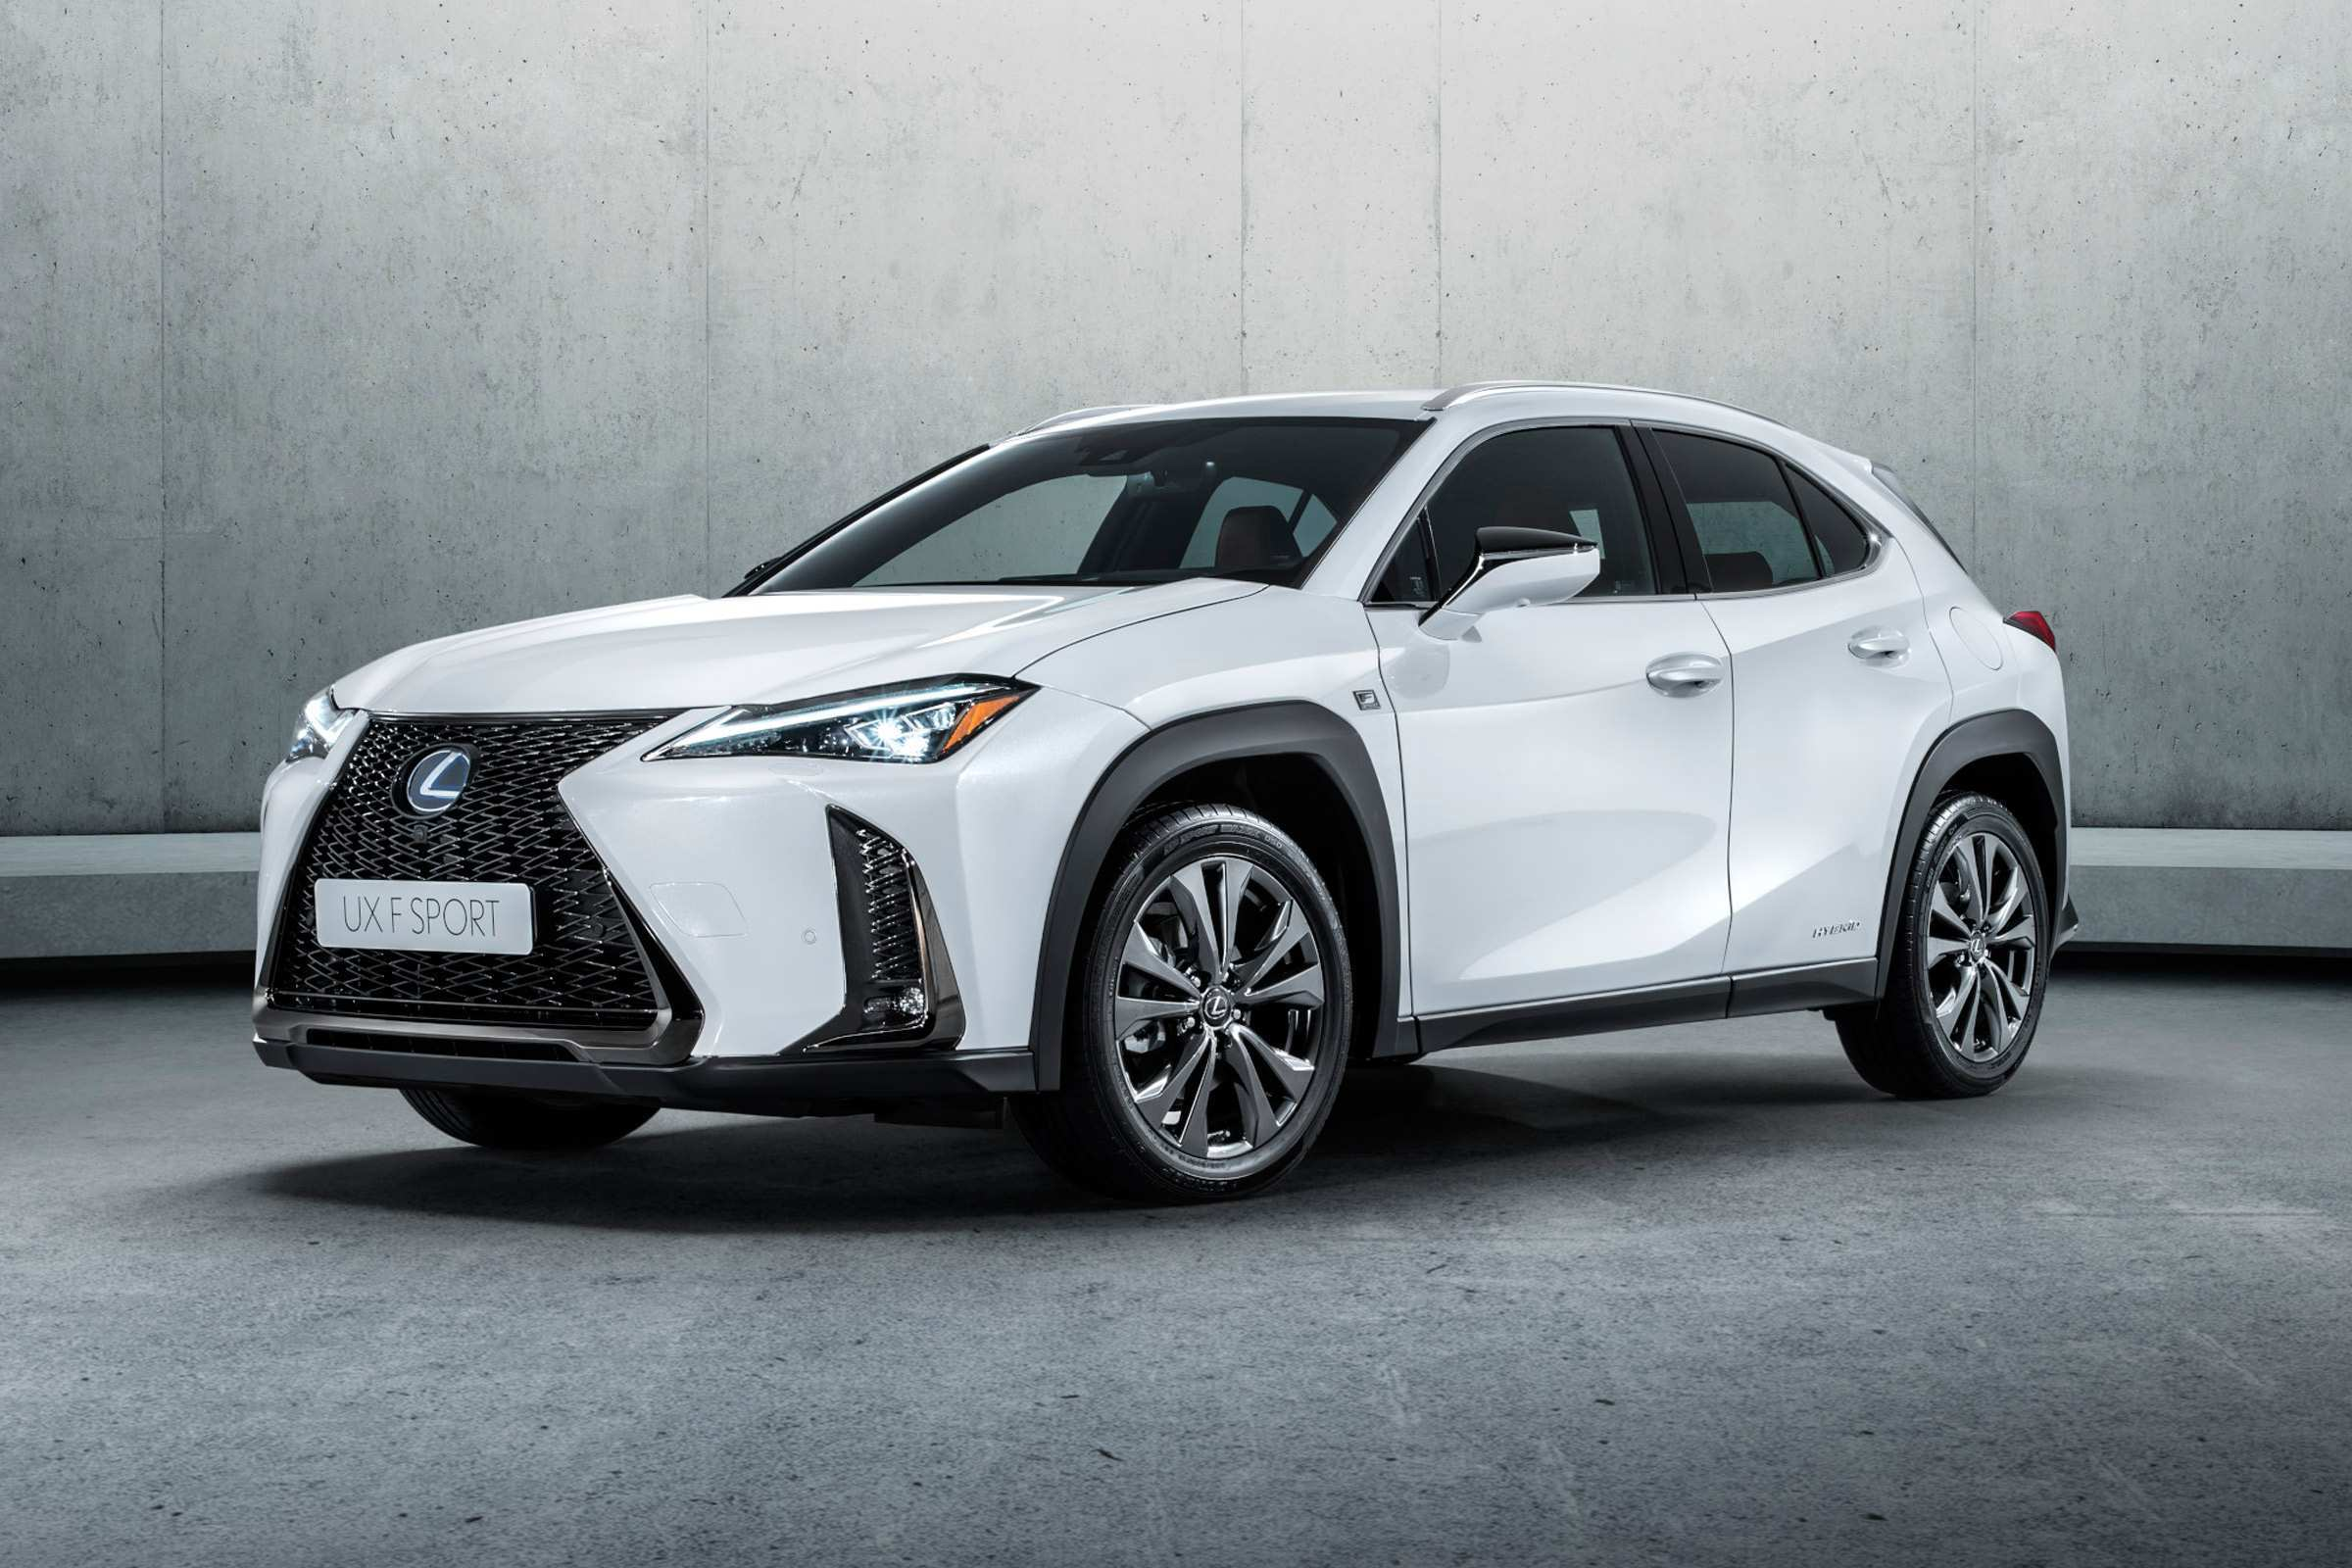 79 New Best Lexus Ux 2019 Specs And Review Prices for Best Lexus Ux 2019 Specs And Review